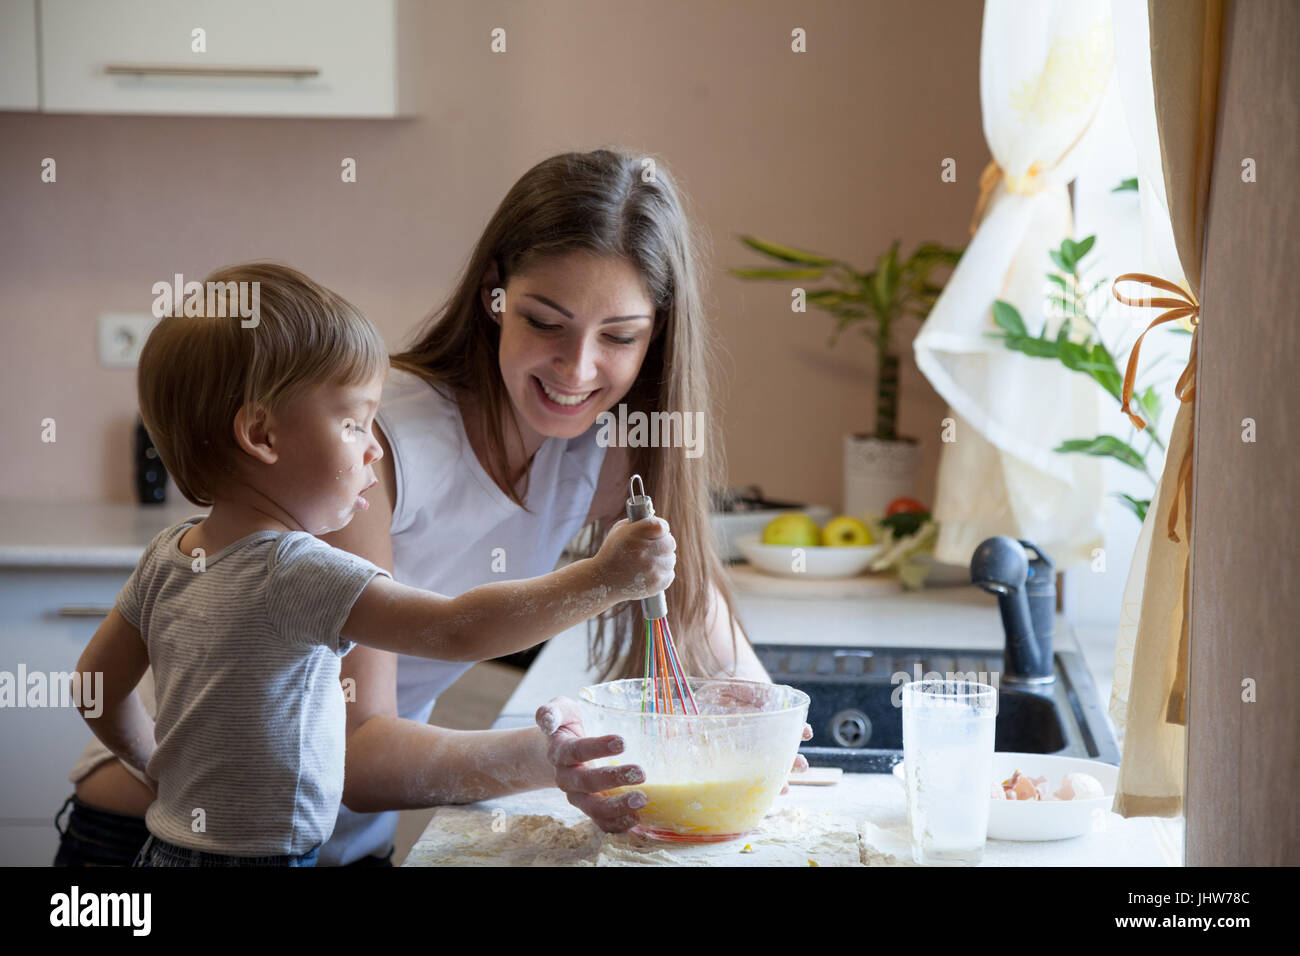 mother and young son prepare pie in the kitchen - Stock Image